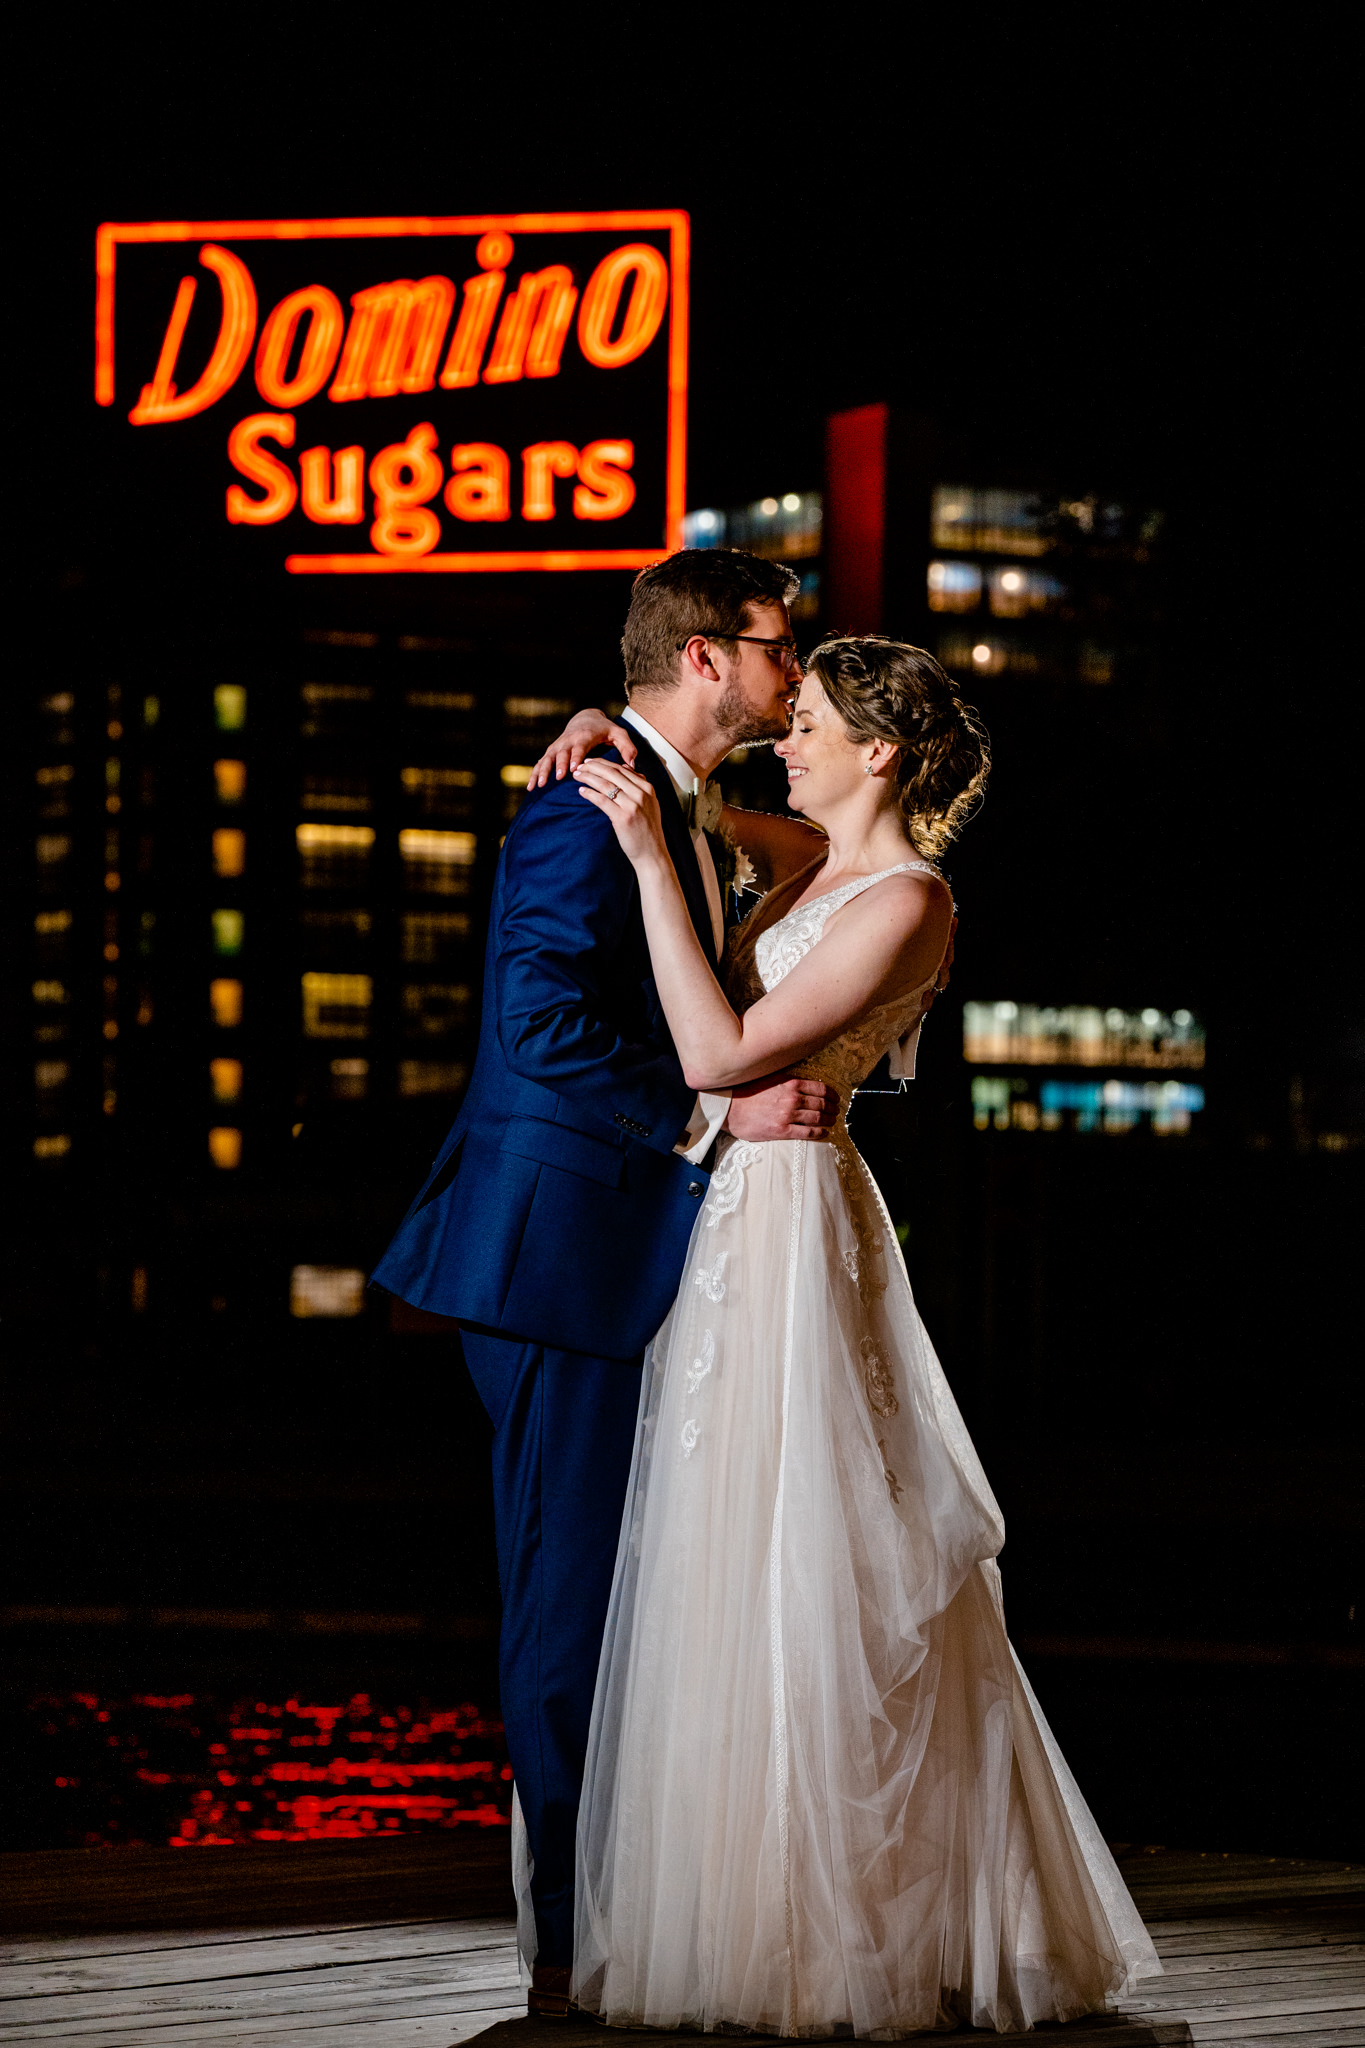 Baltimore Museum of Industry Spring Wedding Domino Sugar Sign Inner Harbor Photography by Bee Two Sweet-22.jpg